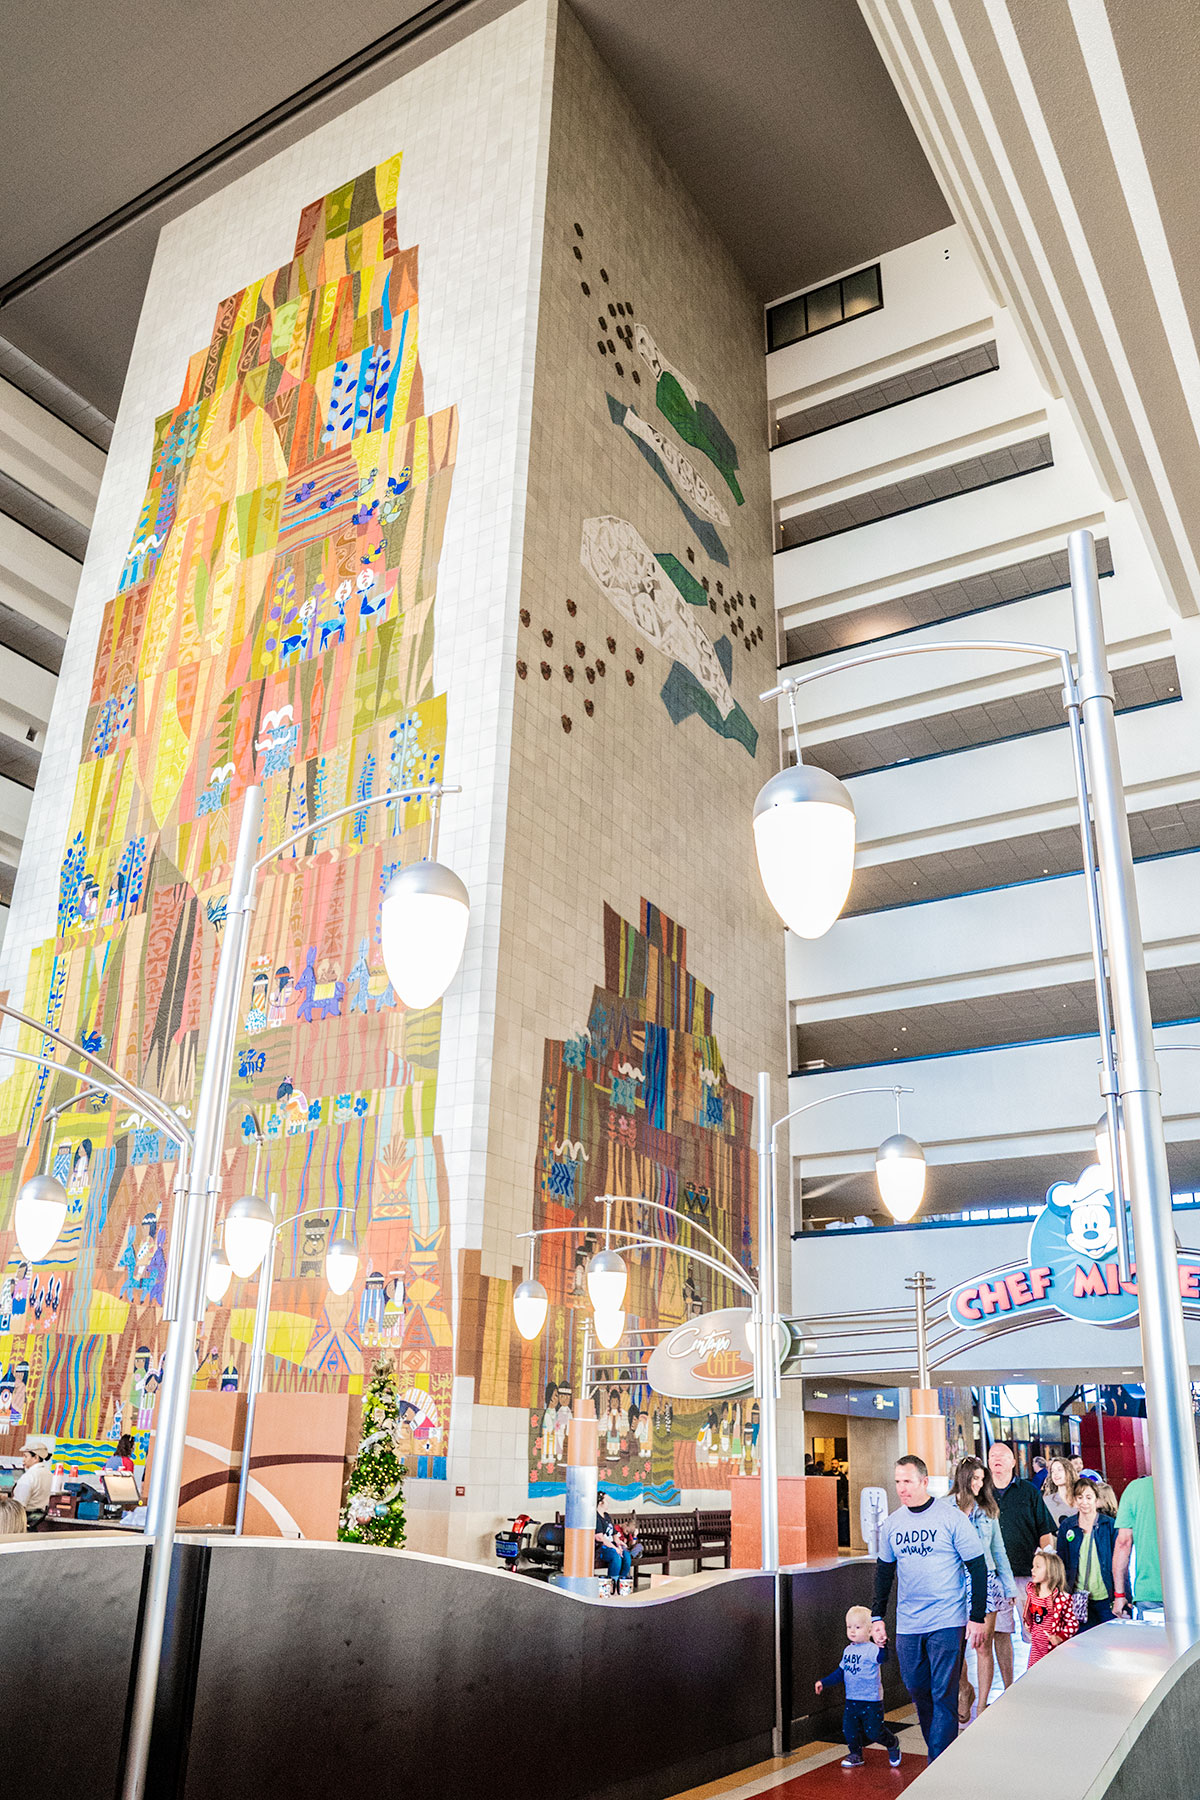 Chef-Mickeys-and-Mural-Contemporary-Resort-Disney-World